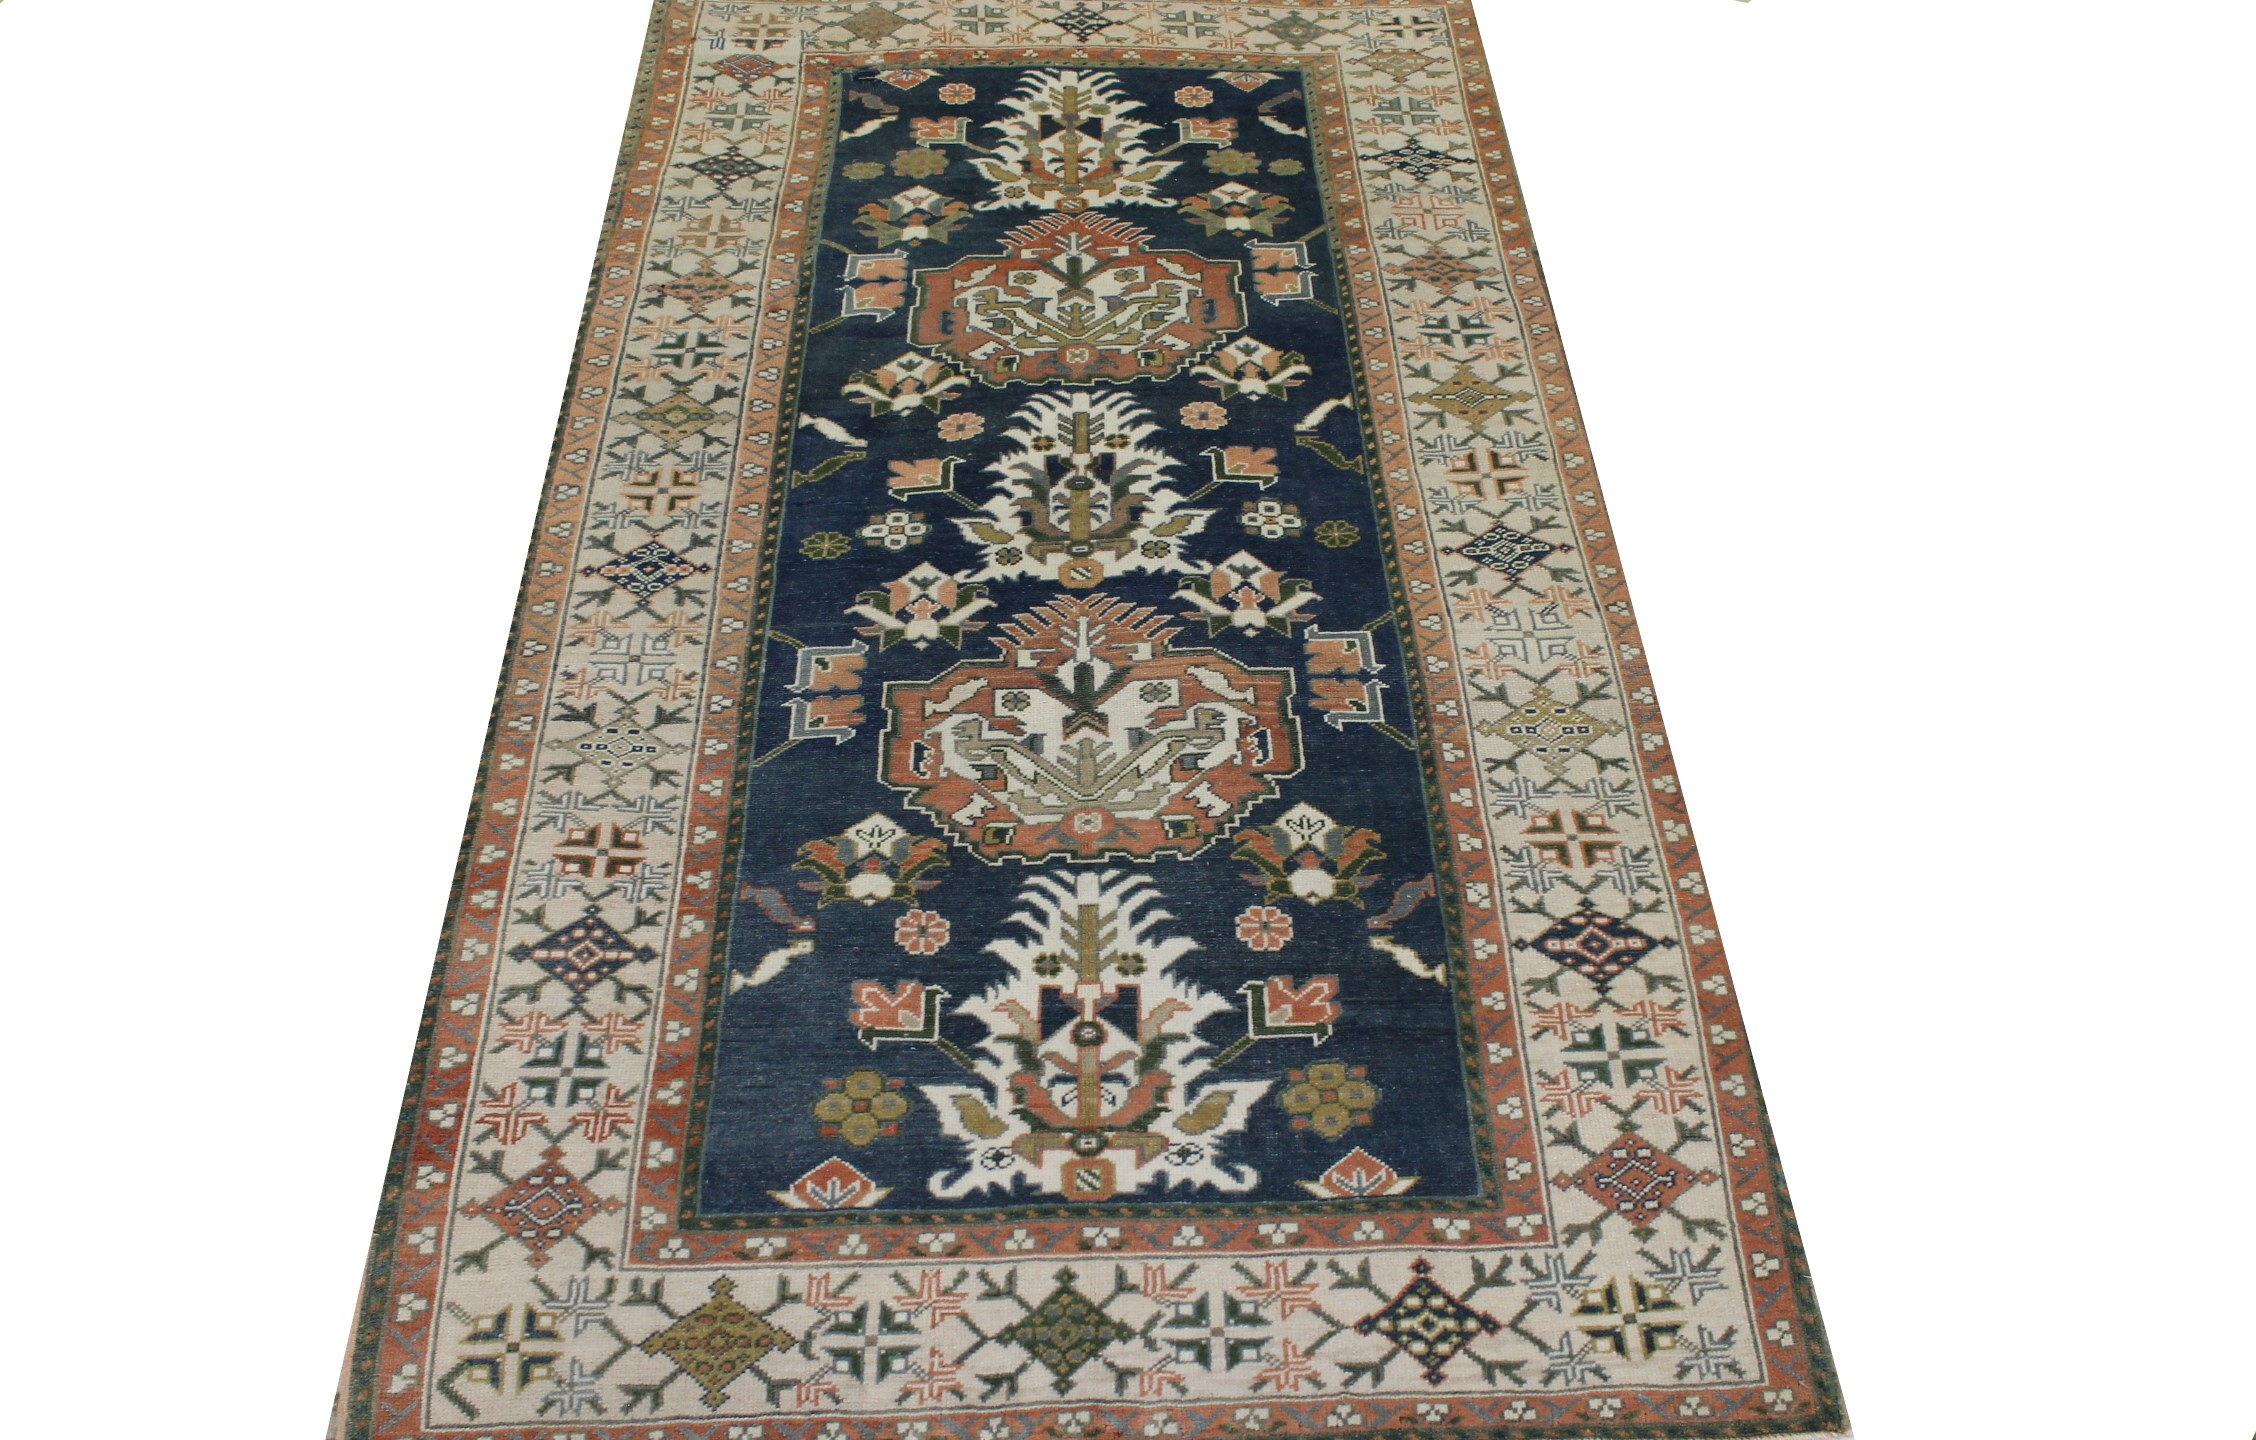 5x7/8 Oushak Hand Knotted Wool Area Rug - MR023460